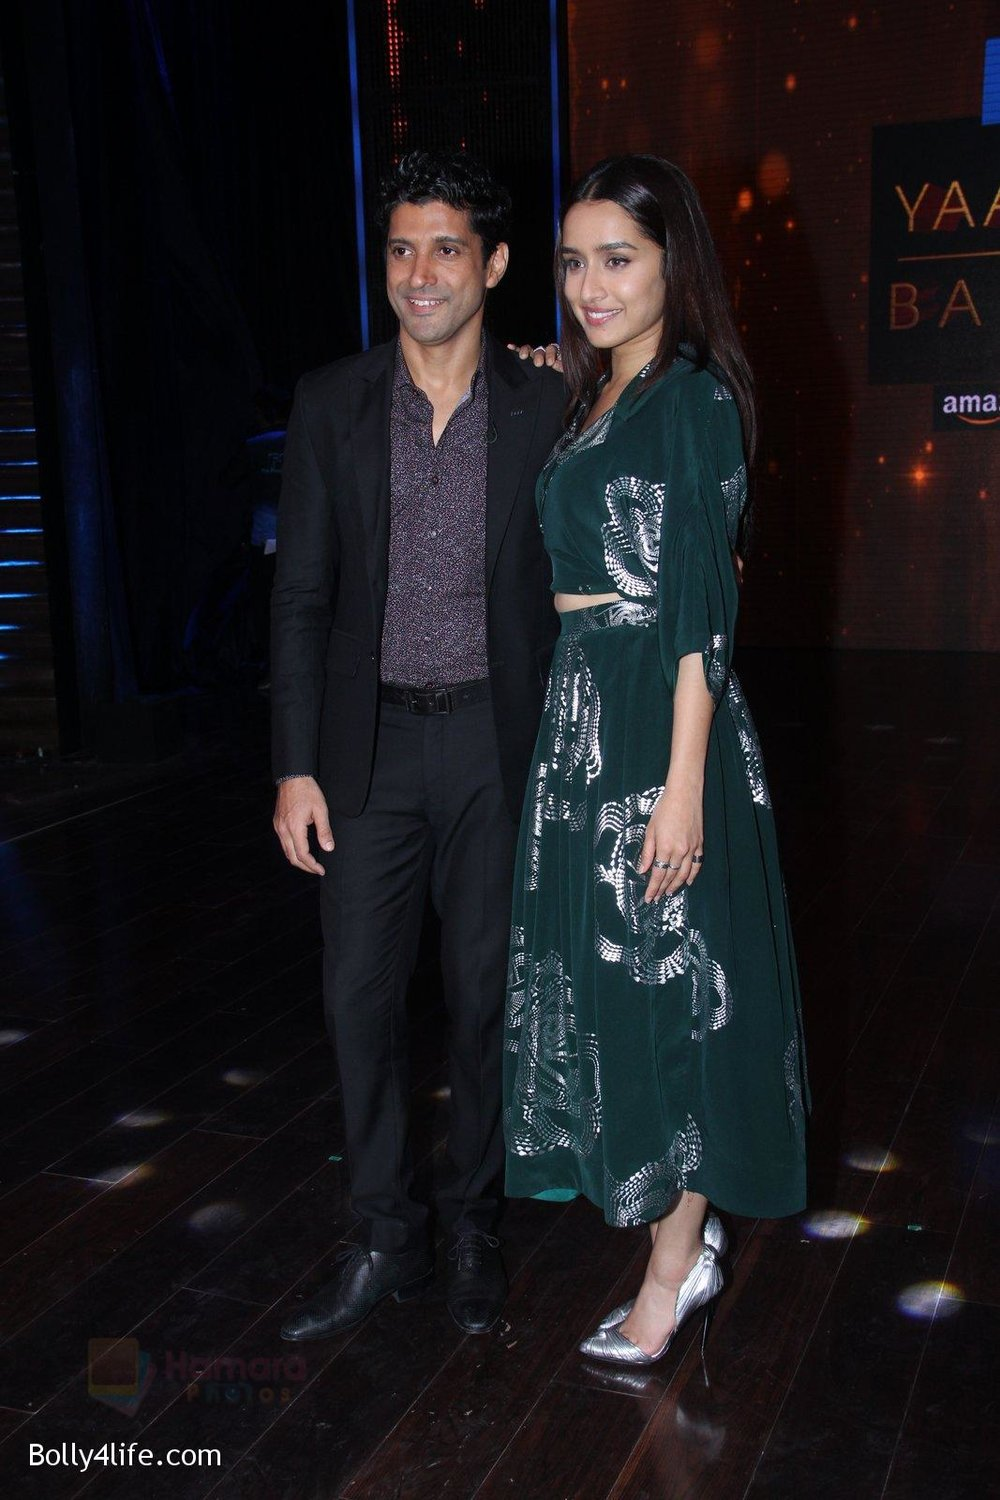 Shraddha-Kapoor-and-Farhan-Akhtar-promote-Rock-On-2-on-the-sets-of-Yaaron-Ki-Baraat-Show-on-Zee-Tv-on-23rd-Oct-2016-68.jpg